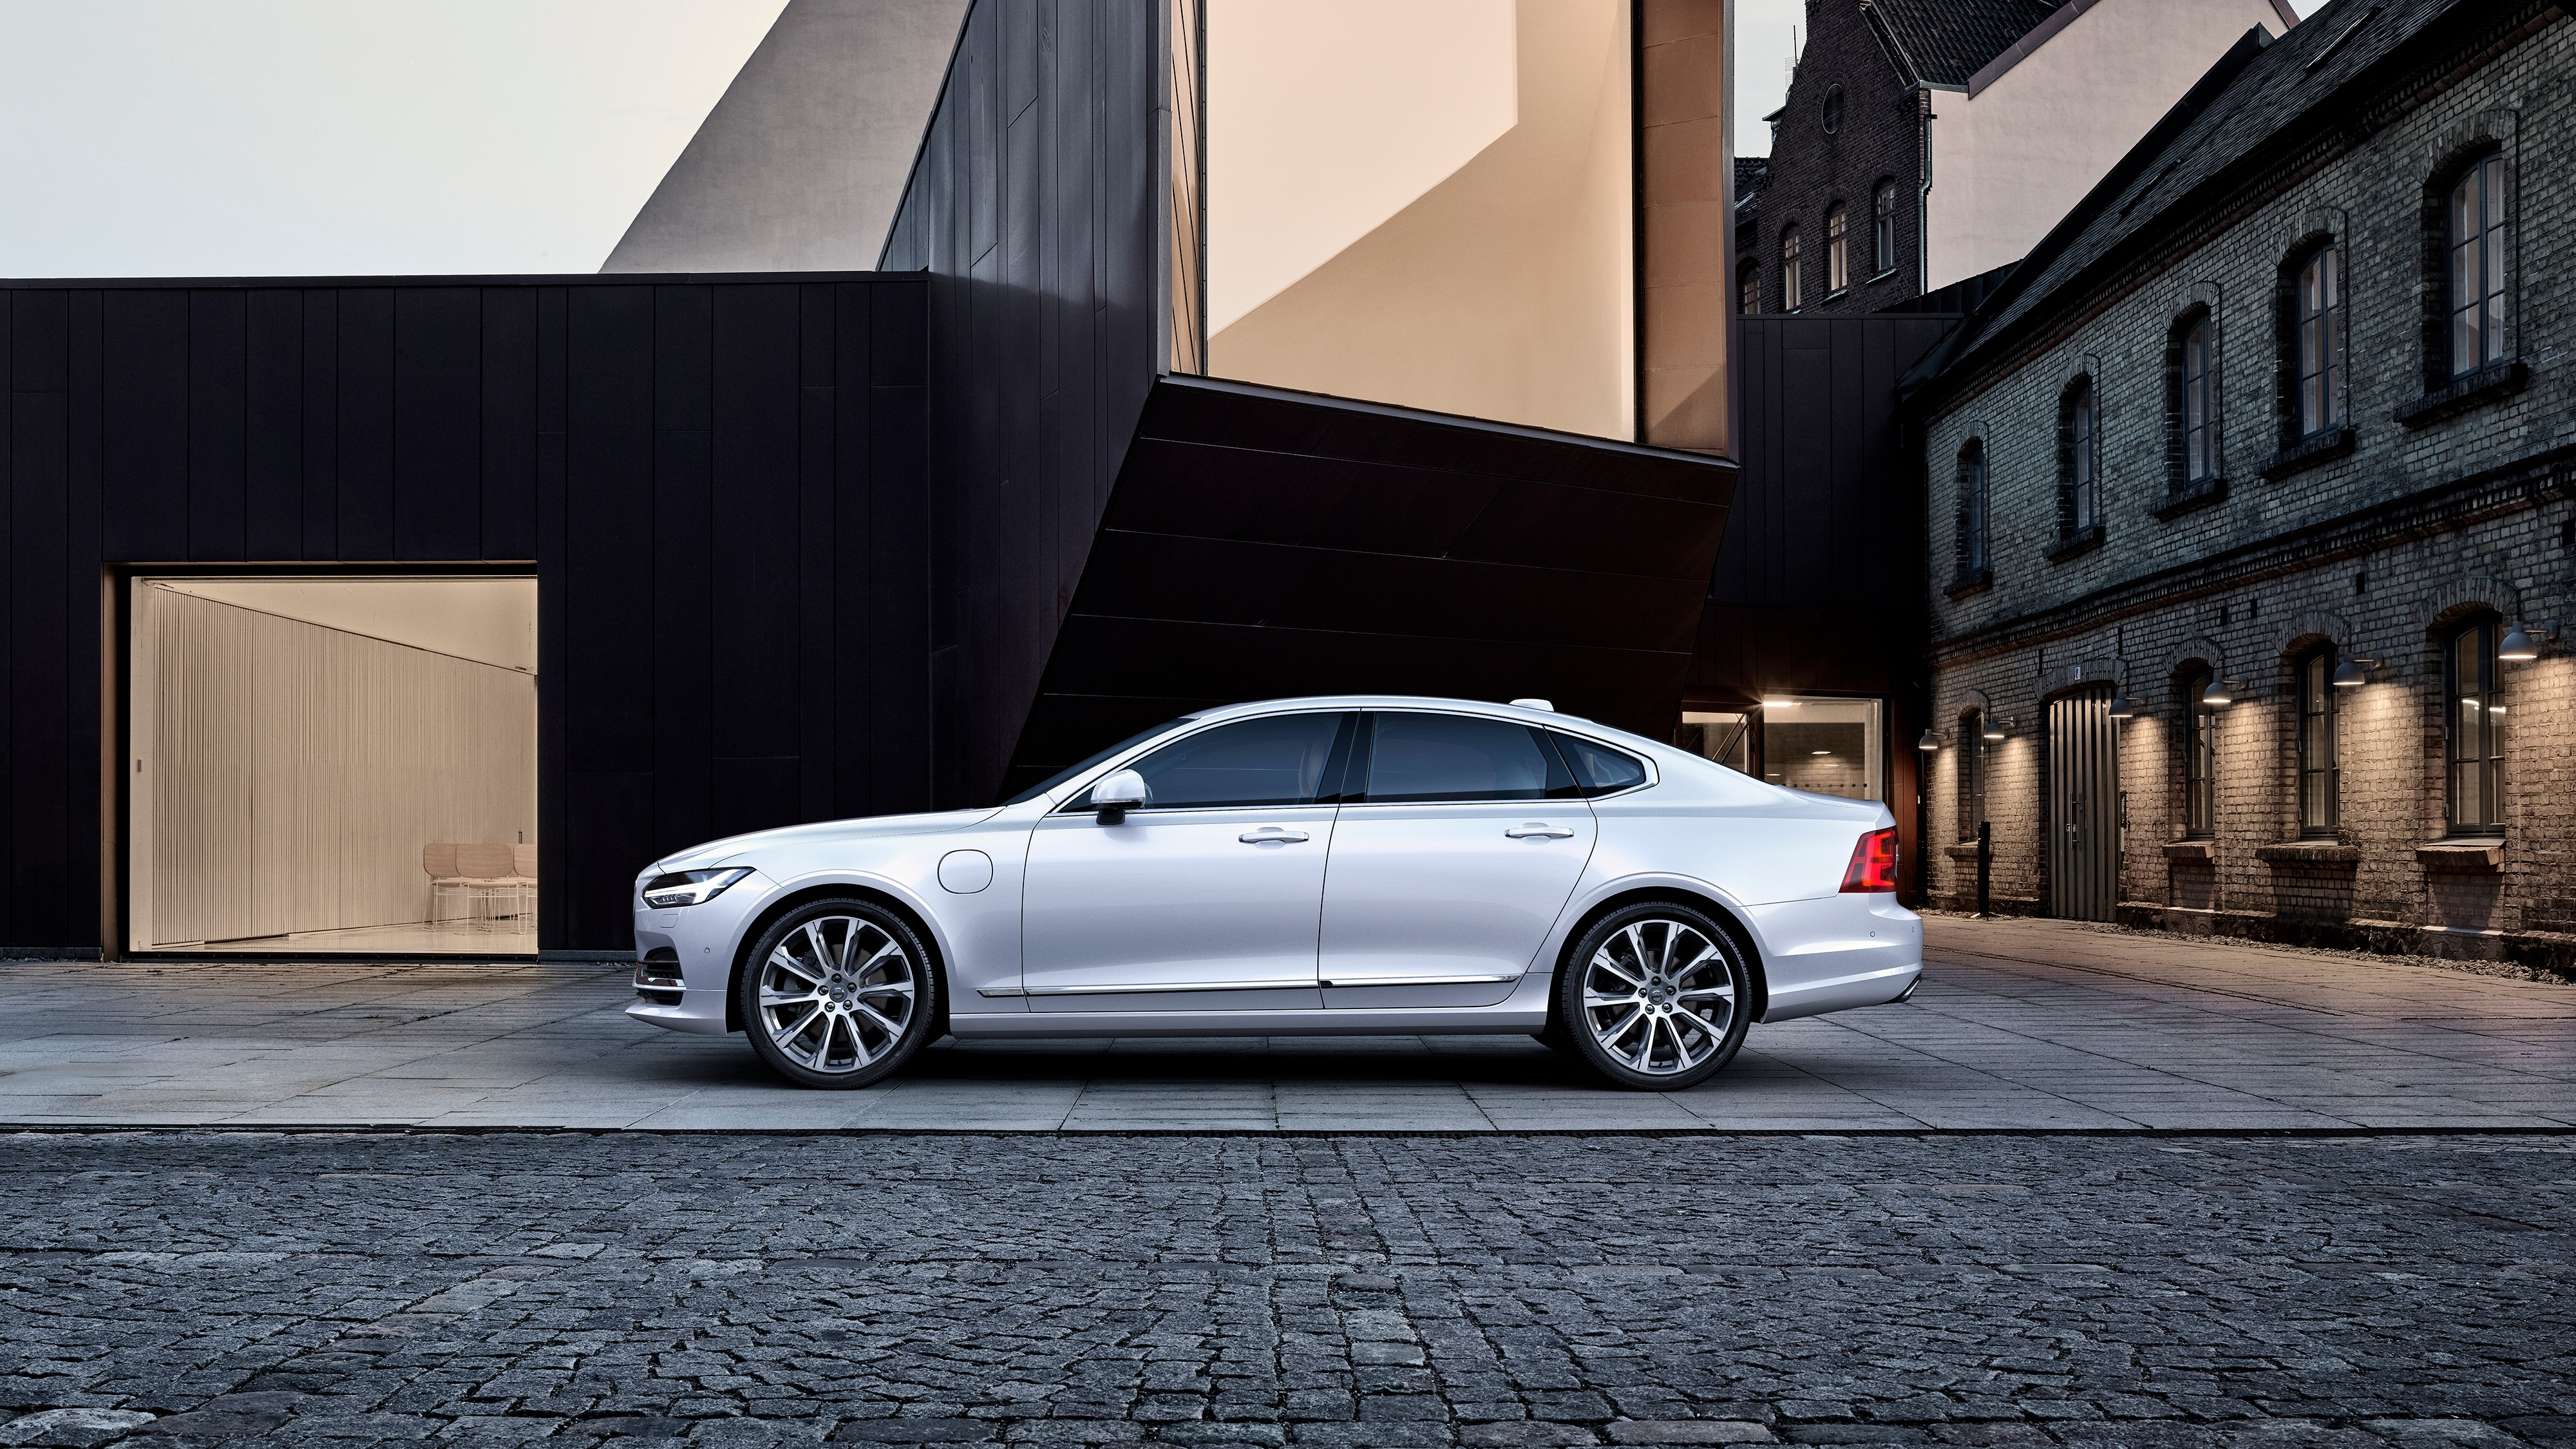 The Volvo S90 Excellence parked outside a modern building